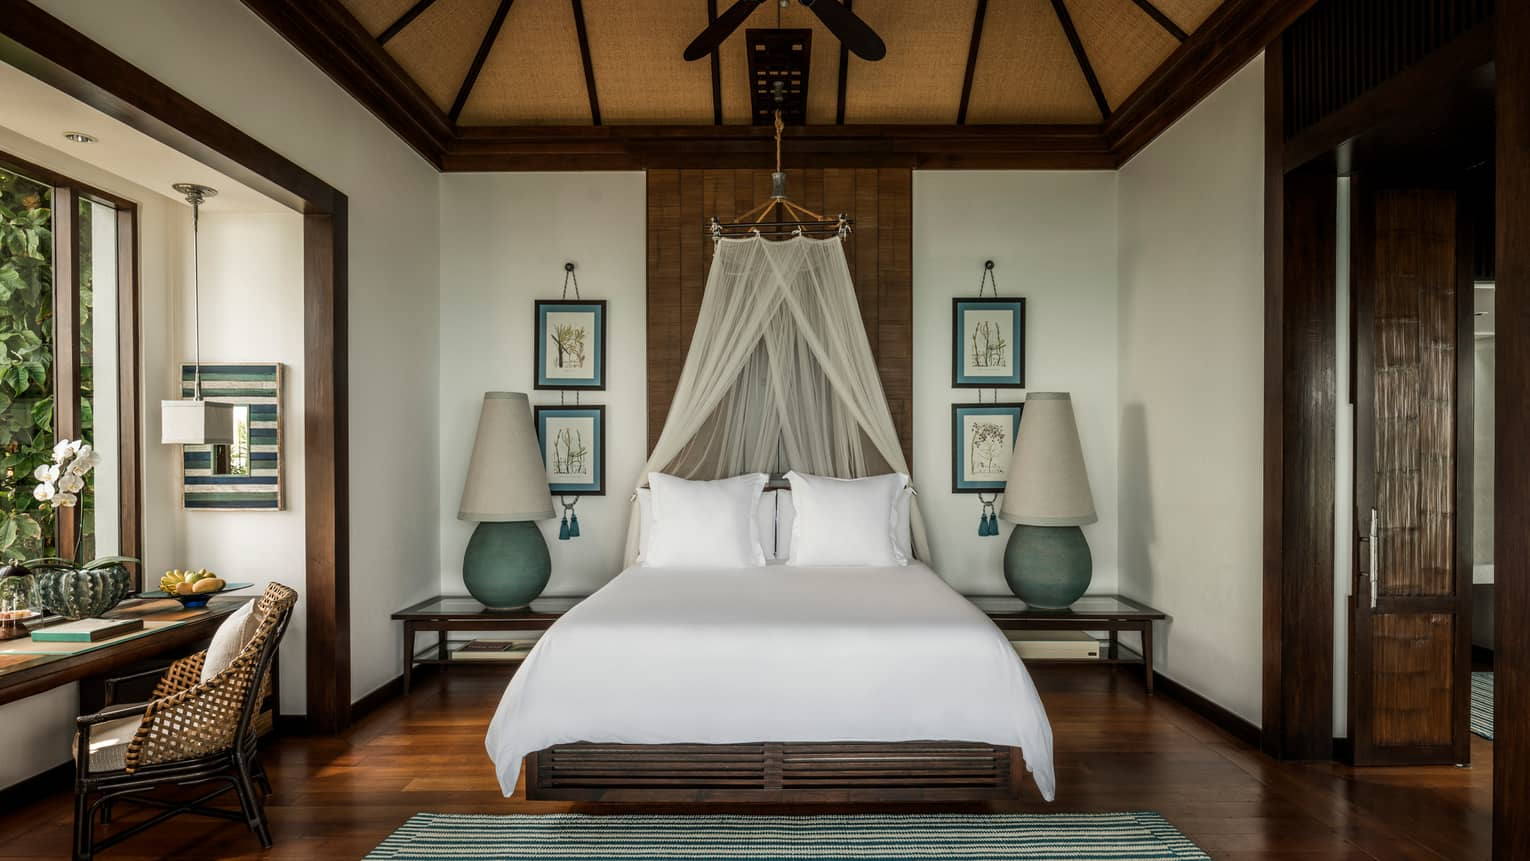 Family Pool Villa bed with white net canopy, large lamps on each side, wood floors, desk by window